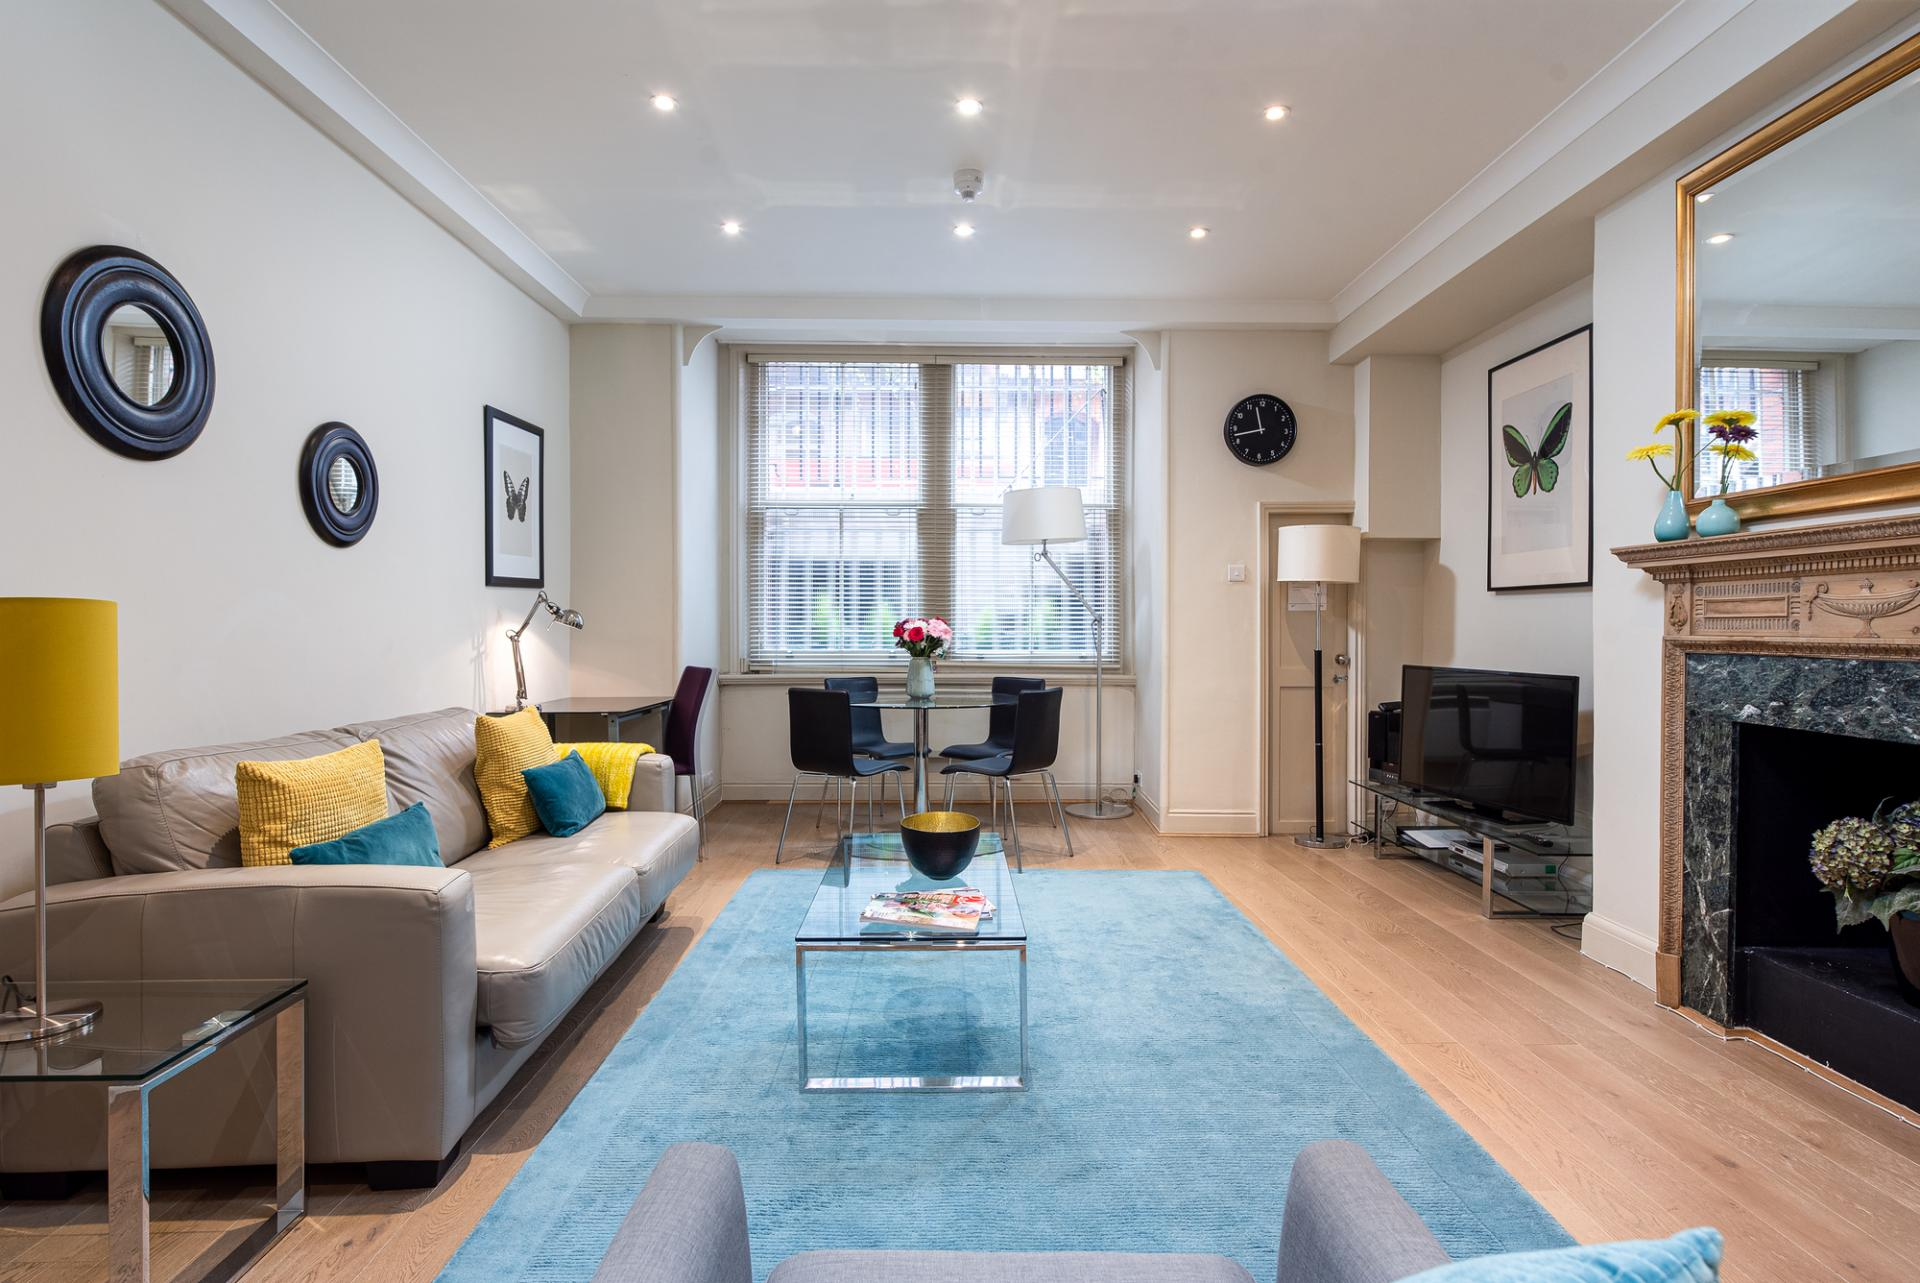 DLiving Room at raycott Place Serviced Apartments, Chelsea, London - Citybase Apartments